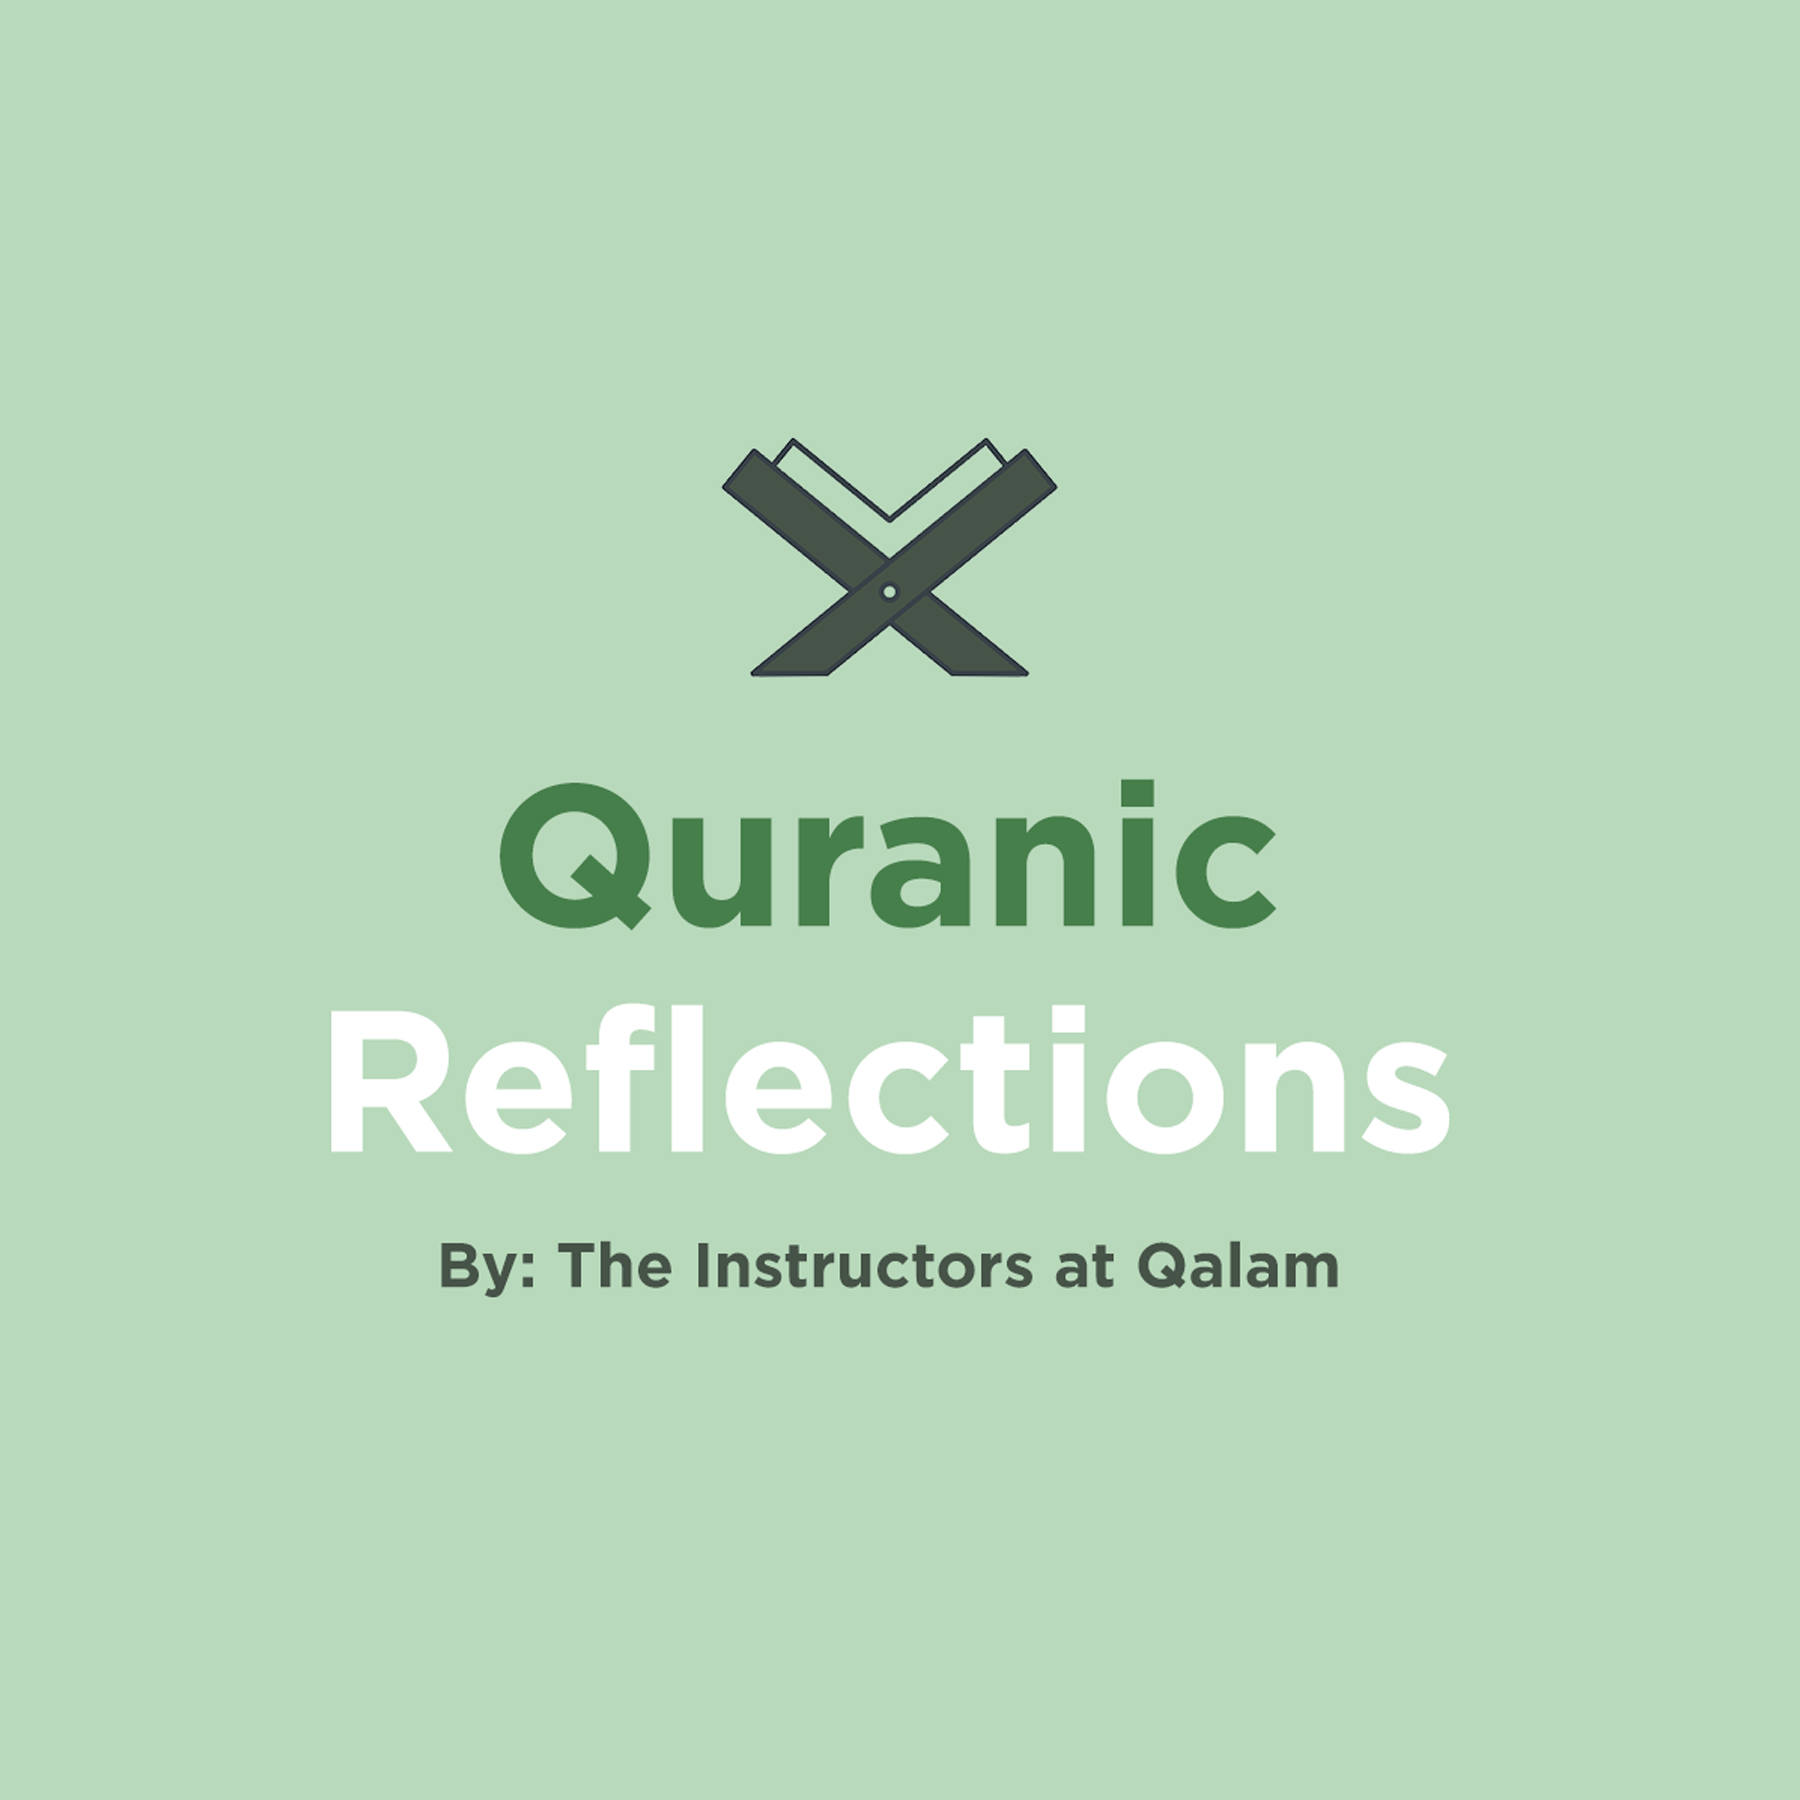 Quranic Reflections – Taking the High Road